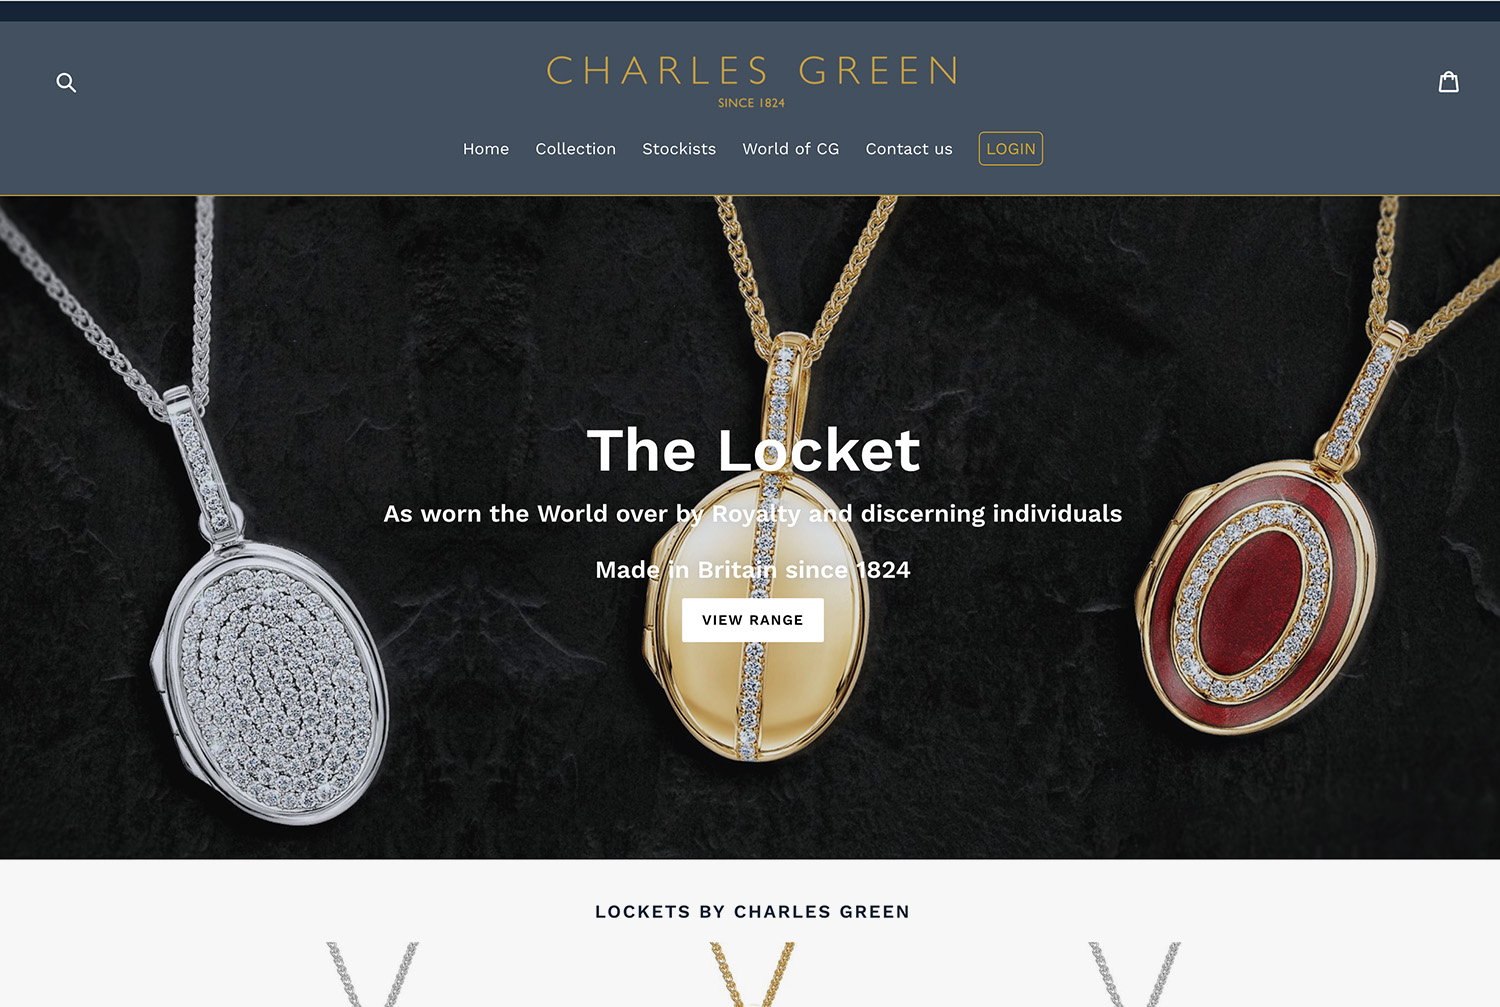 Luxury Lockets - We helped esteemed Jewellery Manufacturer Charles Green launched their new Luxury product range to the public, featuring a stunning range of colourful diamond pendants and lockets.